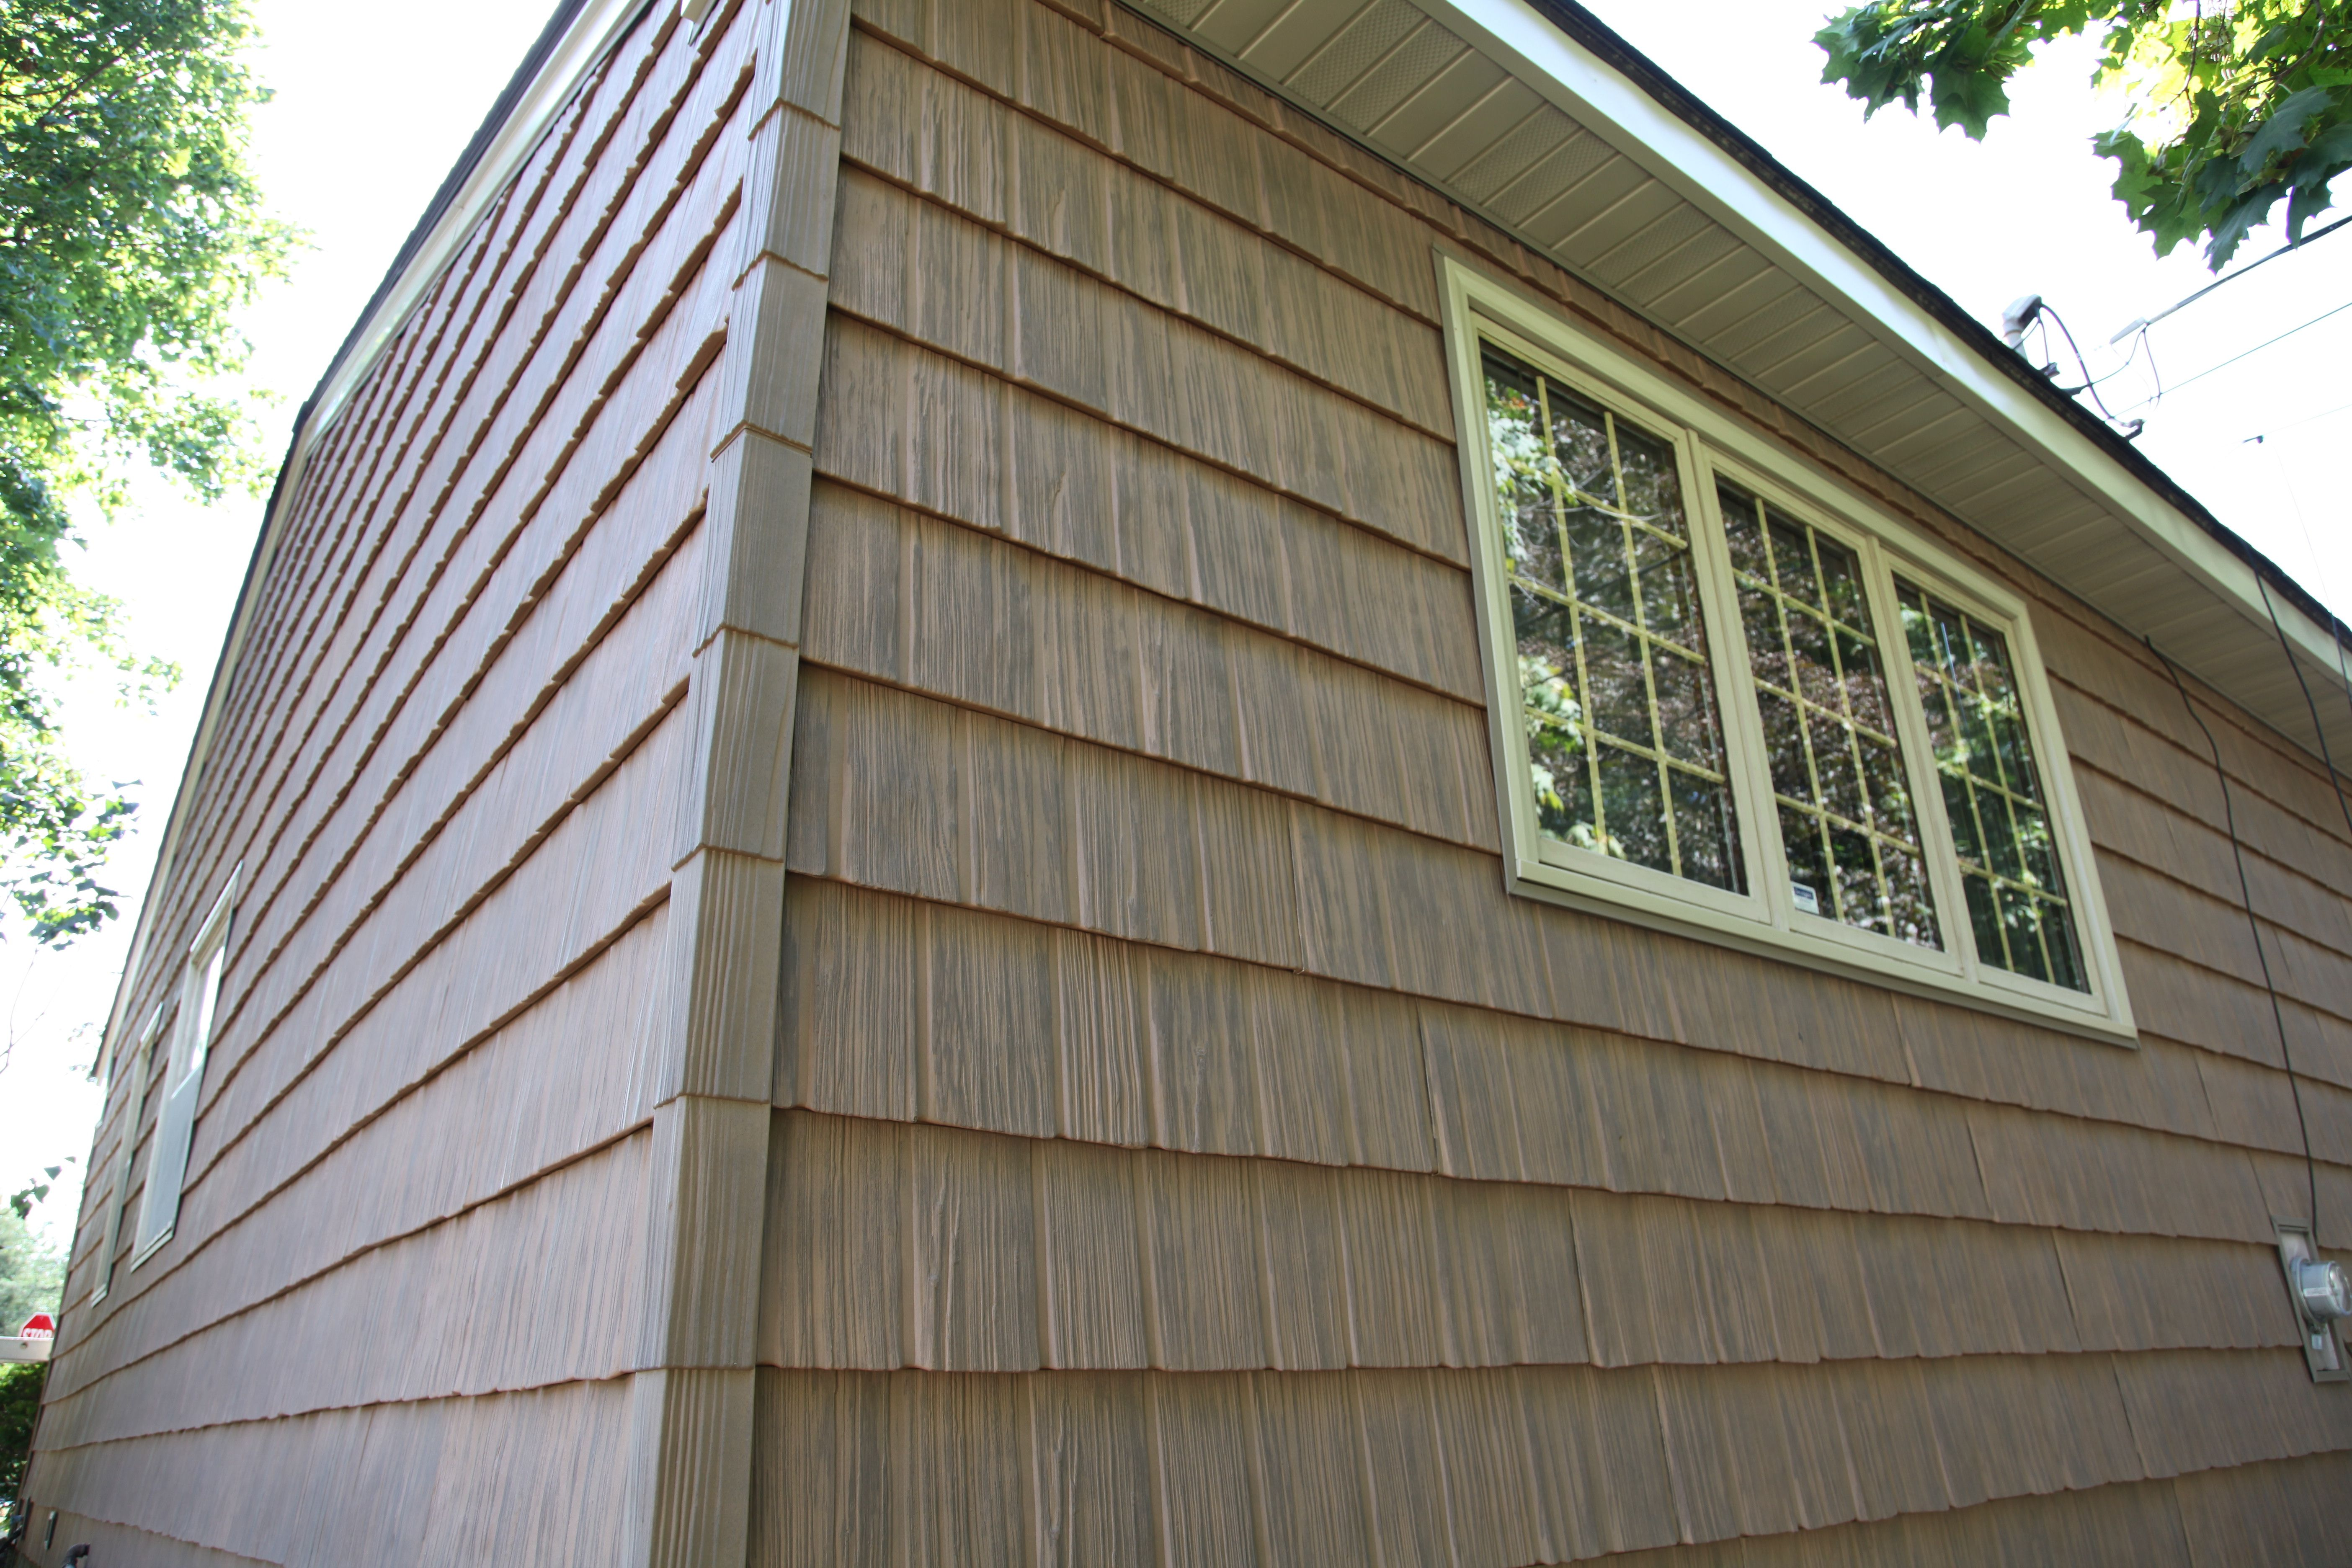 Best Roof Color Brownwood Roof Style Architectural Shingle Trim Soffit Color Wicker Siding Style 400 x 300